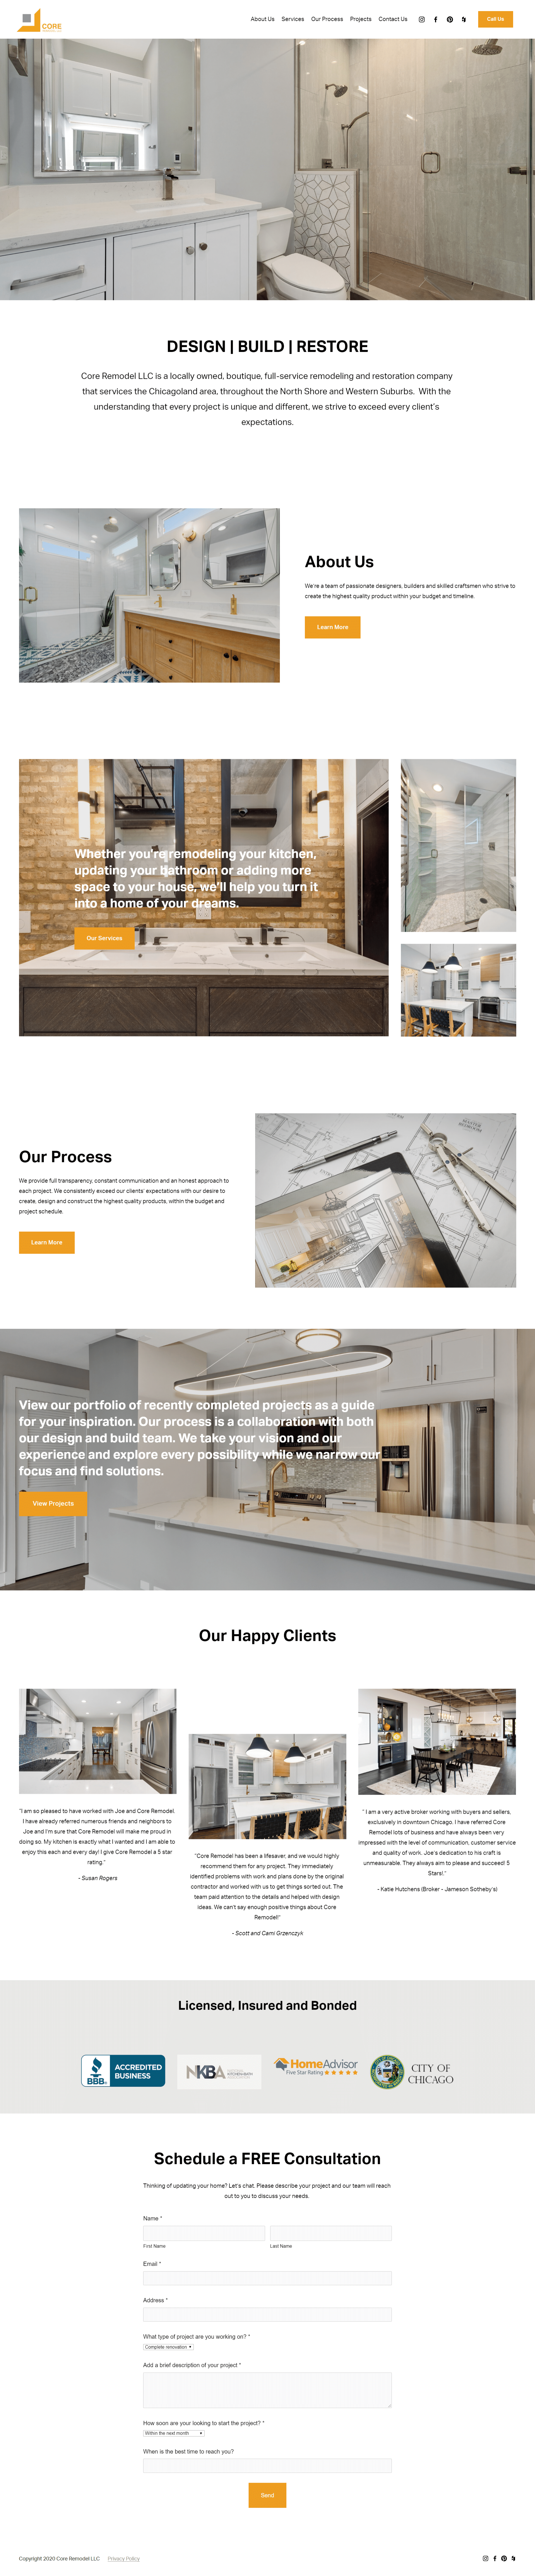 seo for remodeling contractor in sacramento area